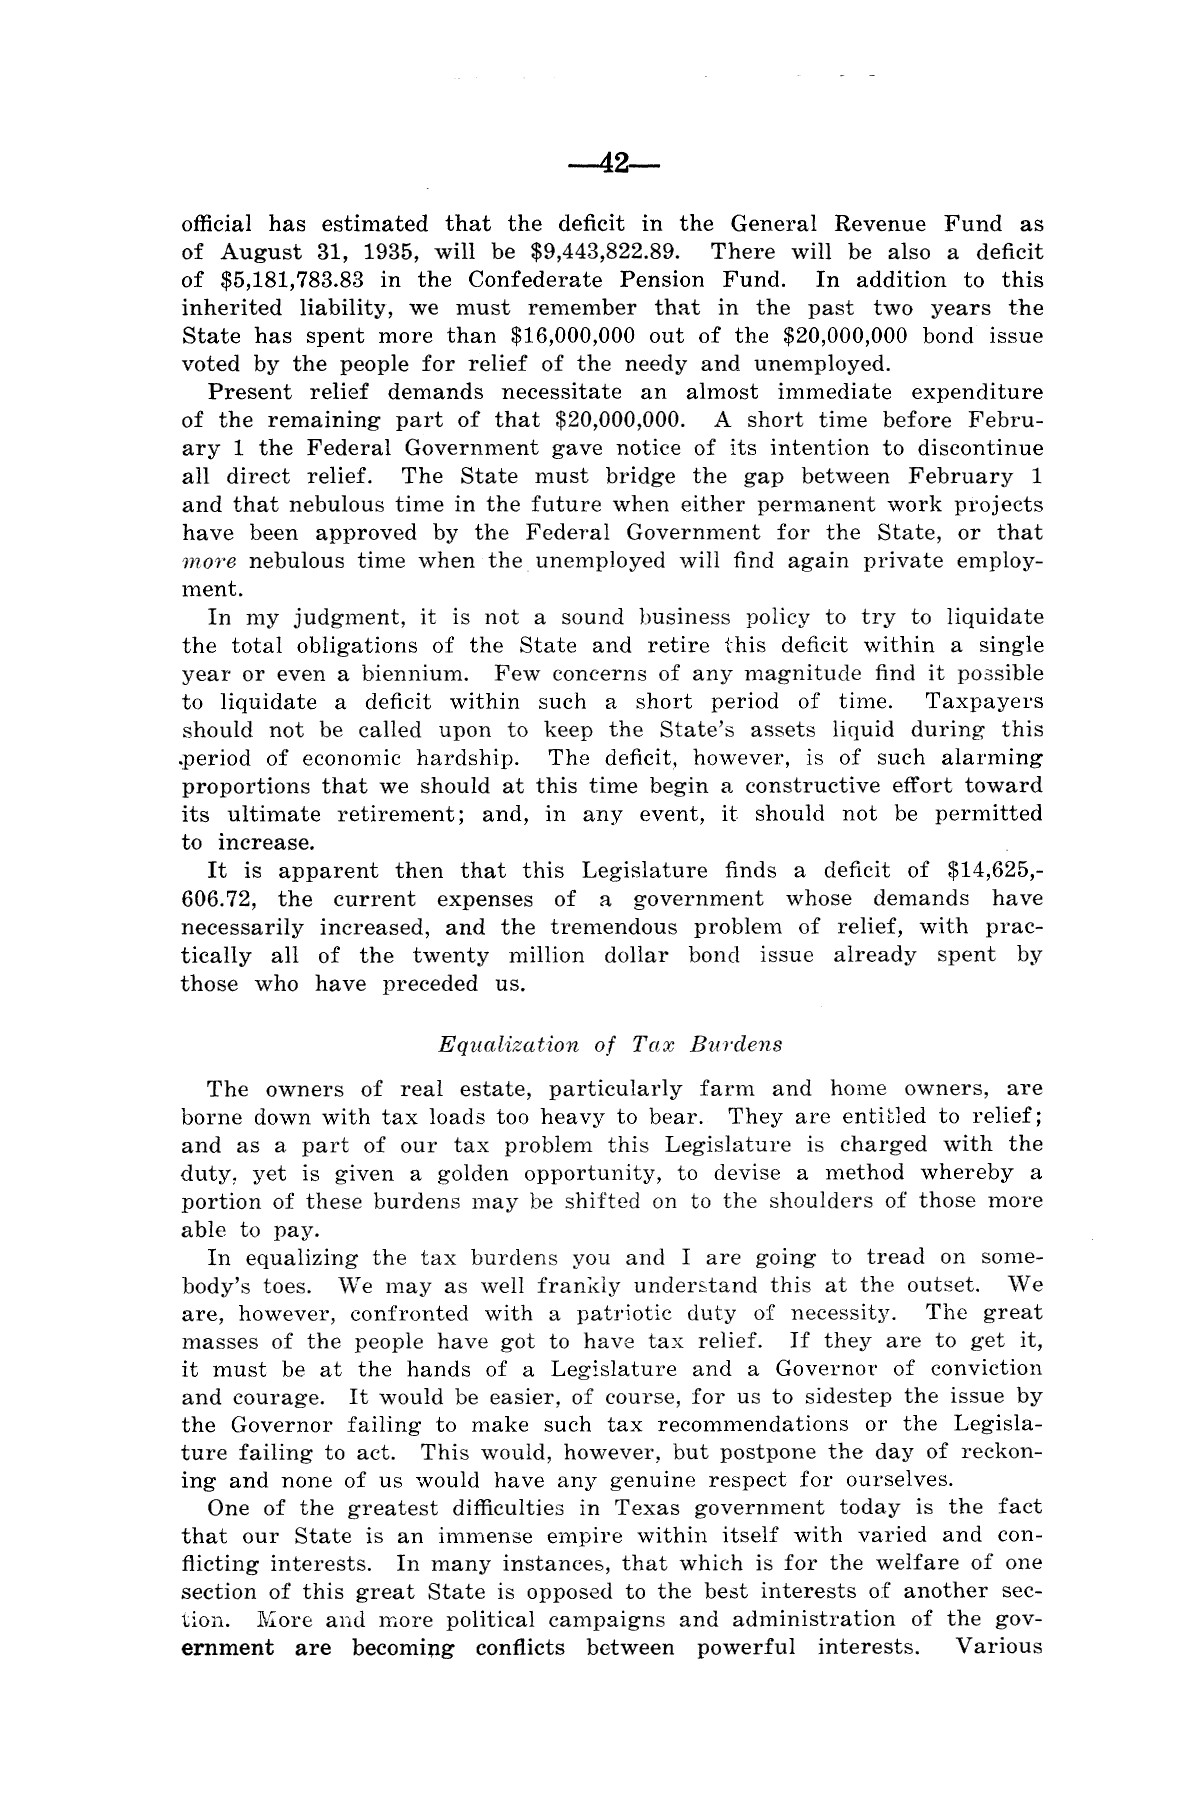 Legislative Messages of Hon. James V. Allred, Governor of Texas 1935-1939                                                                                                      [Sequence #]: 41 of 263